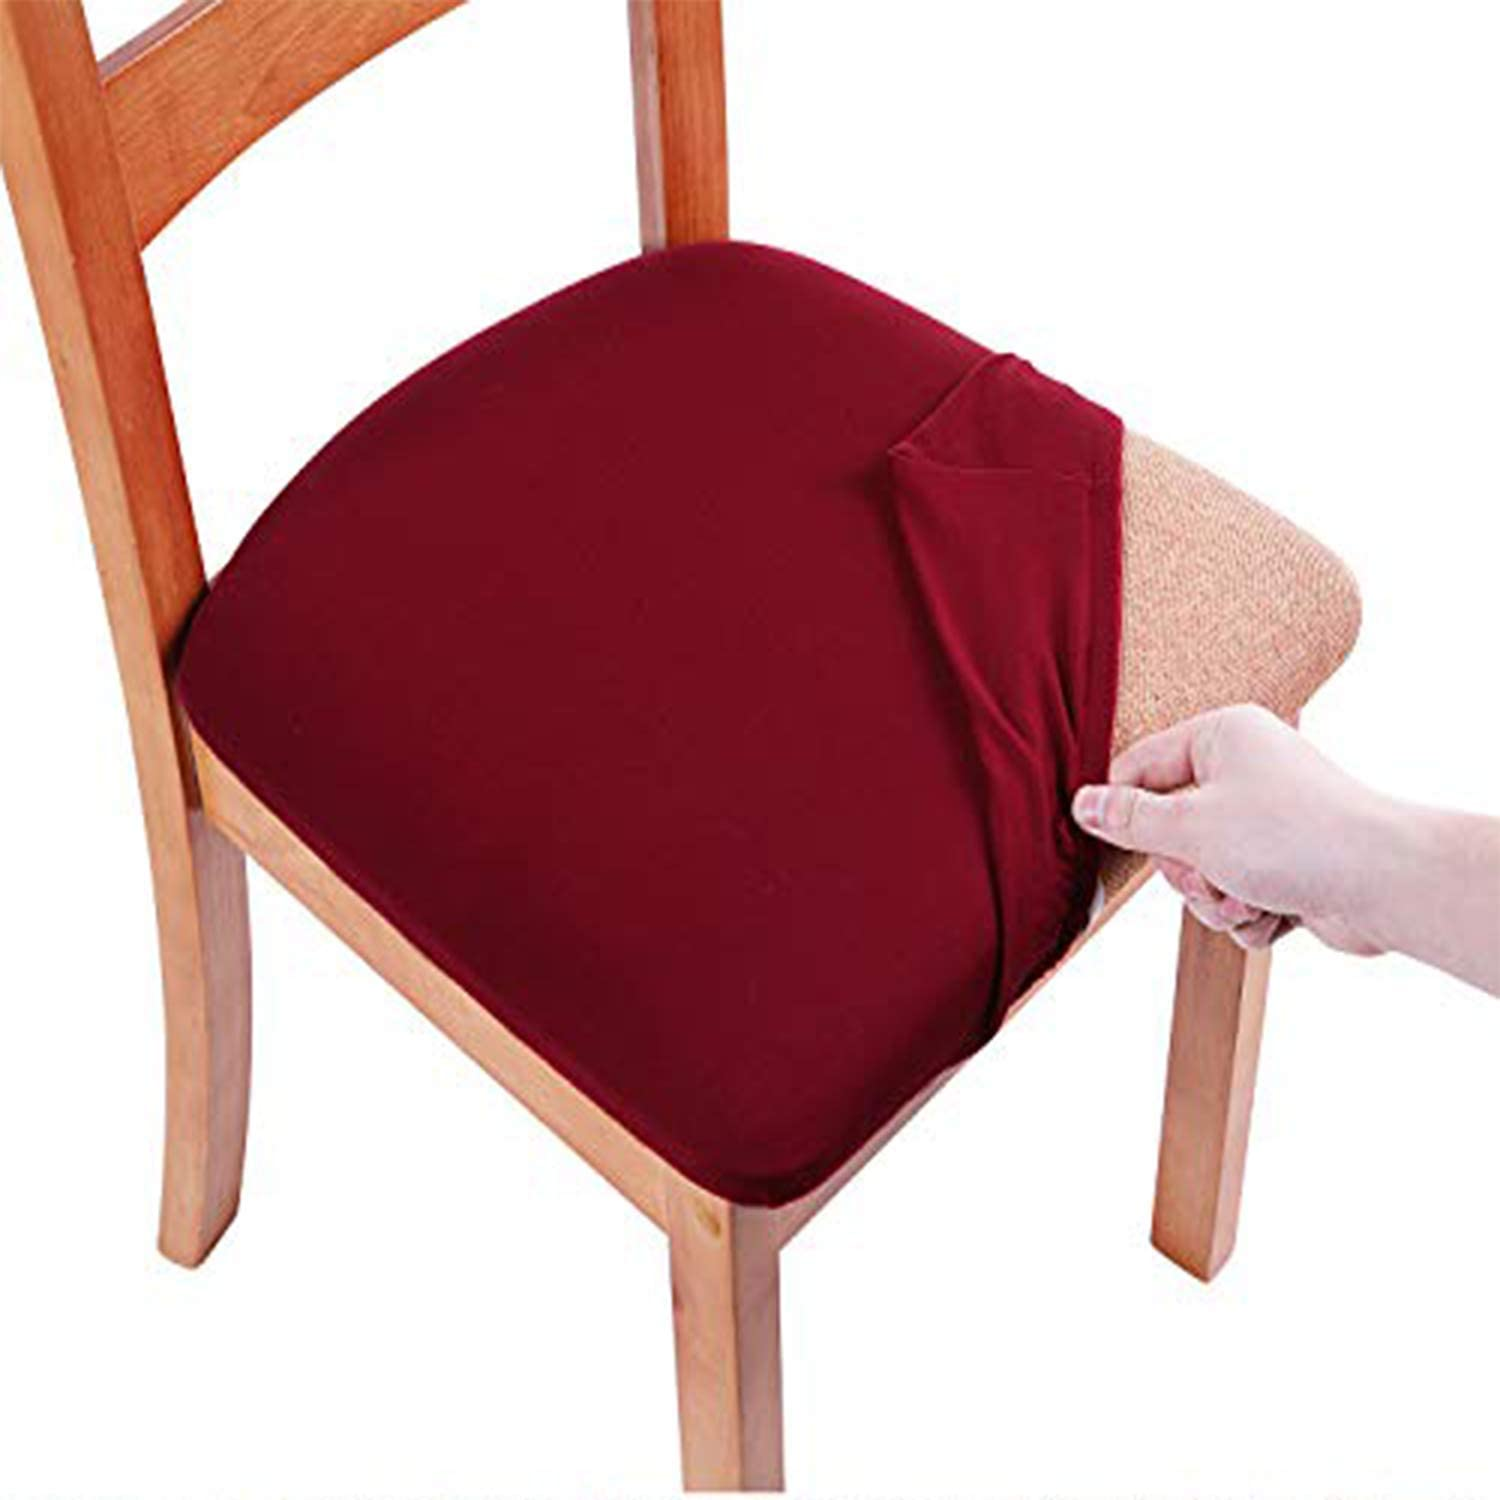 Smiry Printed Dining Chair Seat Covers - Stretchy Removable Washable Upholstered Chair Seat Slipcover Protector (Set of 4, Burgundy)